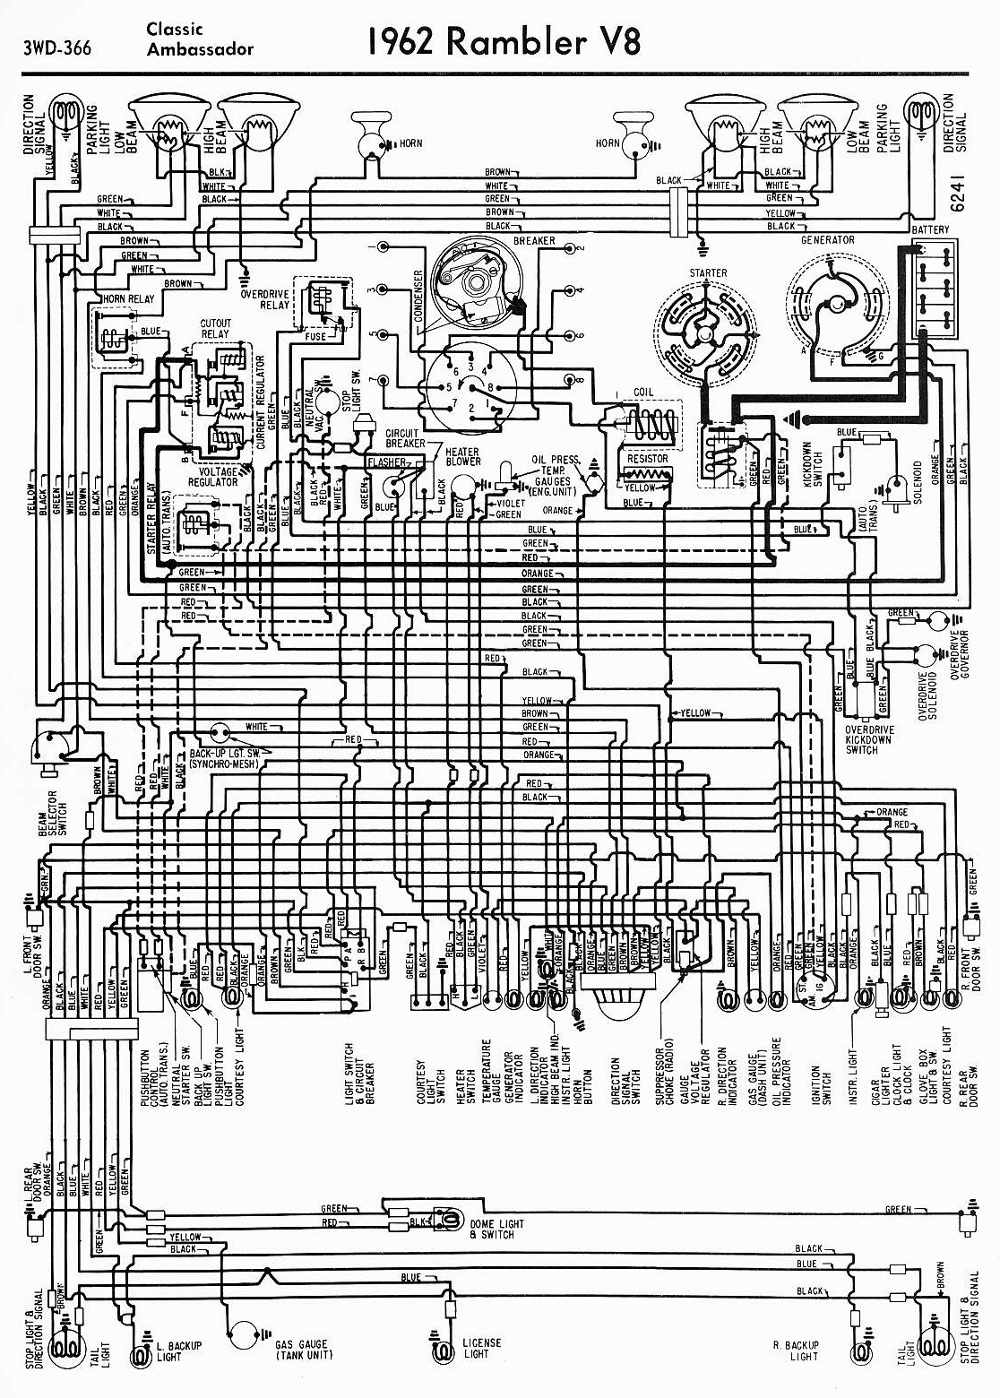 Amc Car Manuals Wiring Diagrams Pdf Fault Codes Isuzu Radio Diagram Red Gray Download